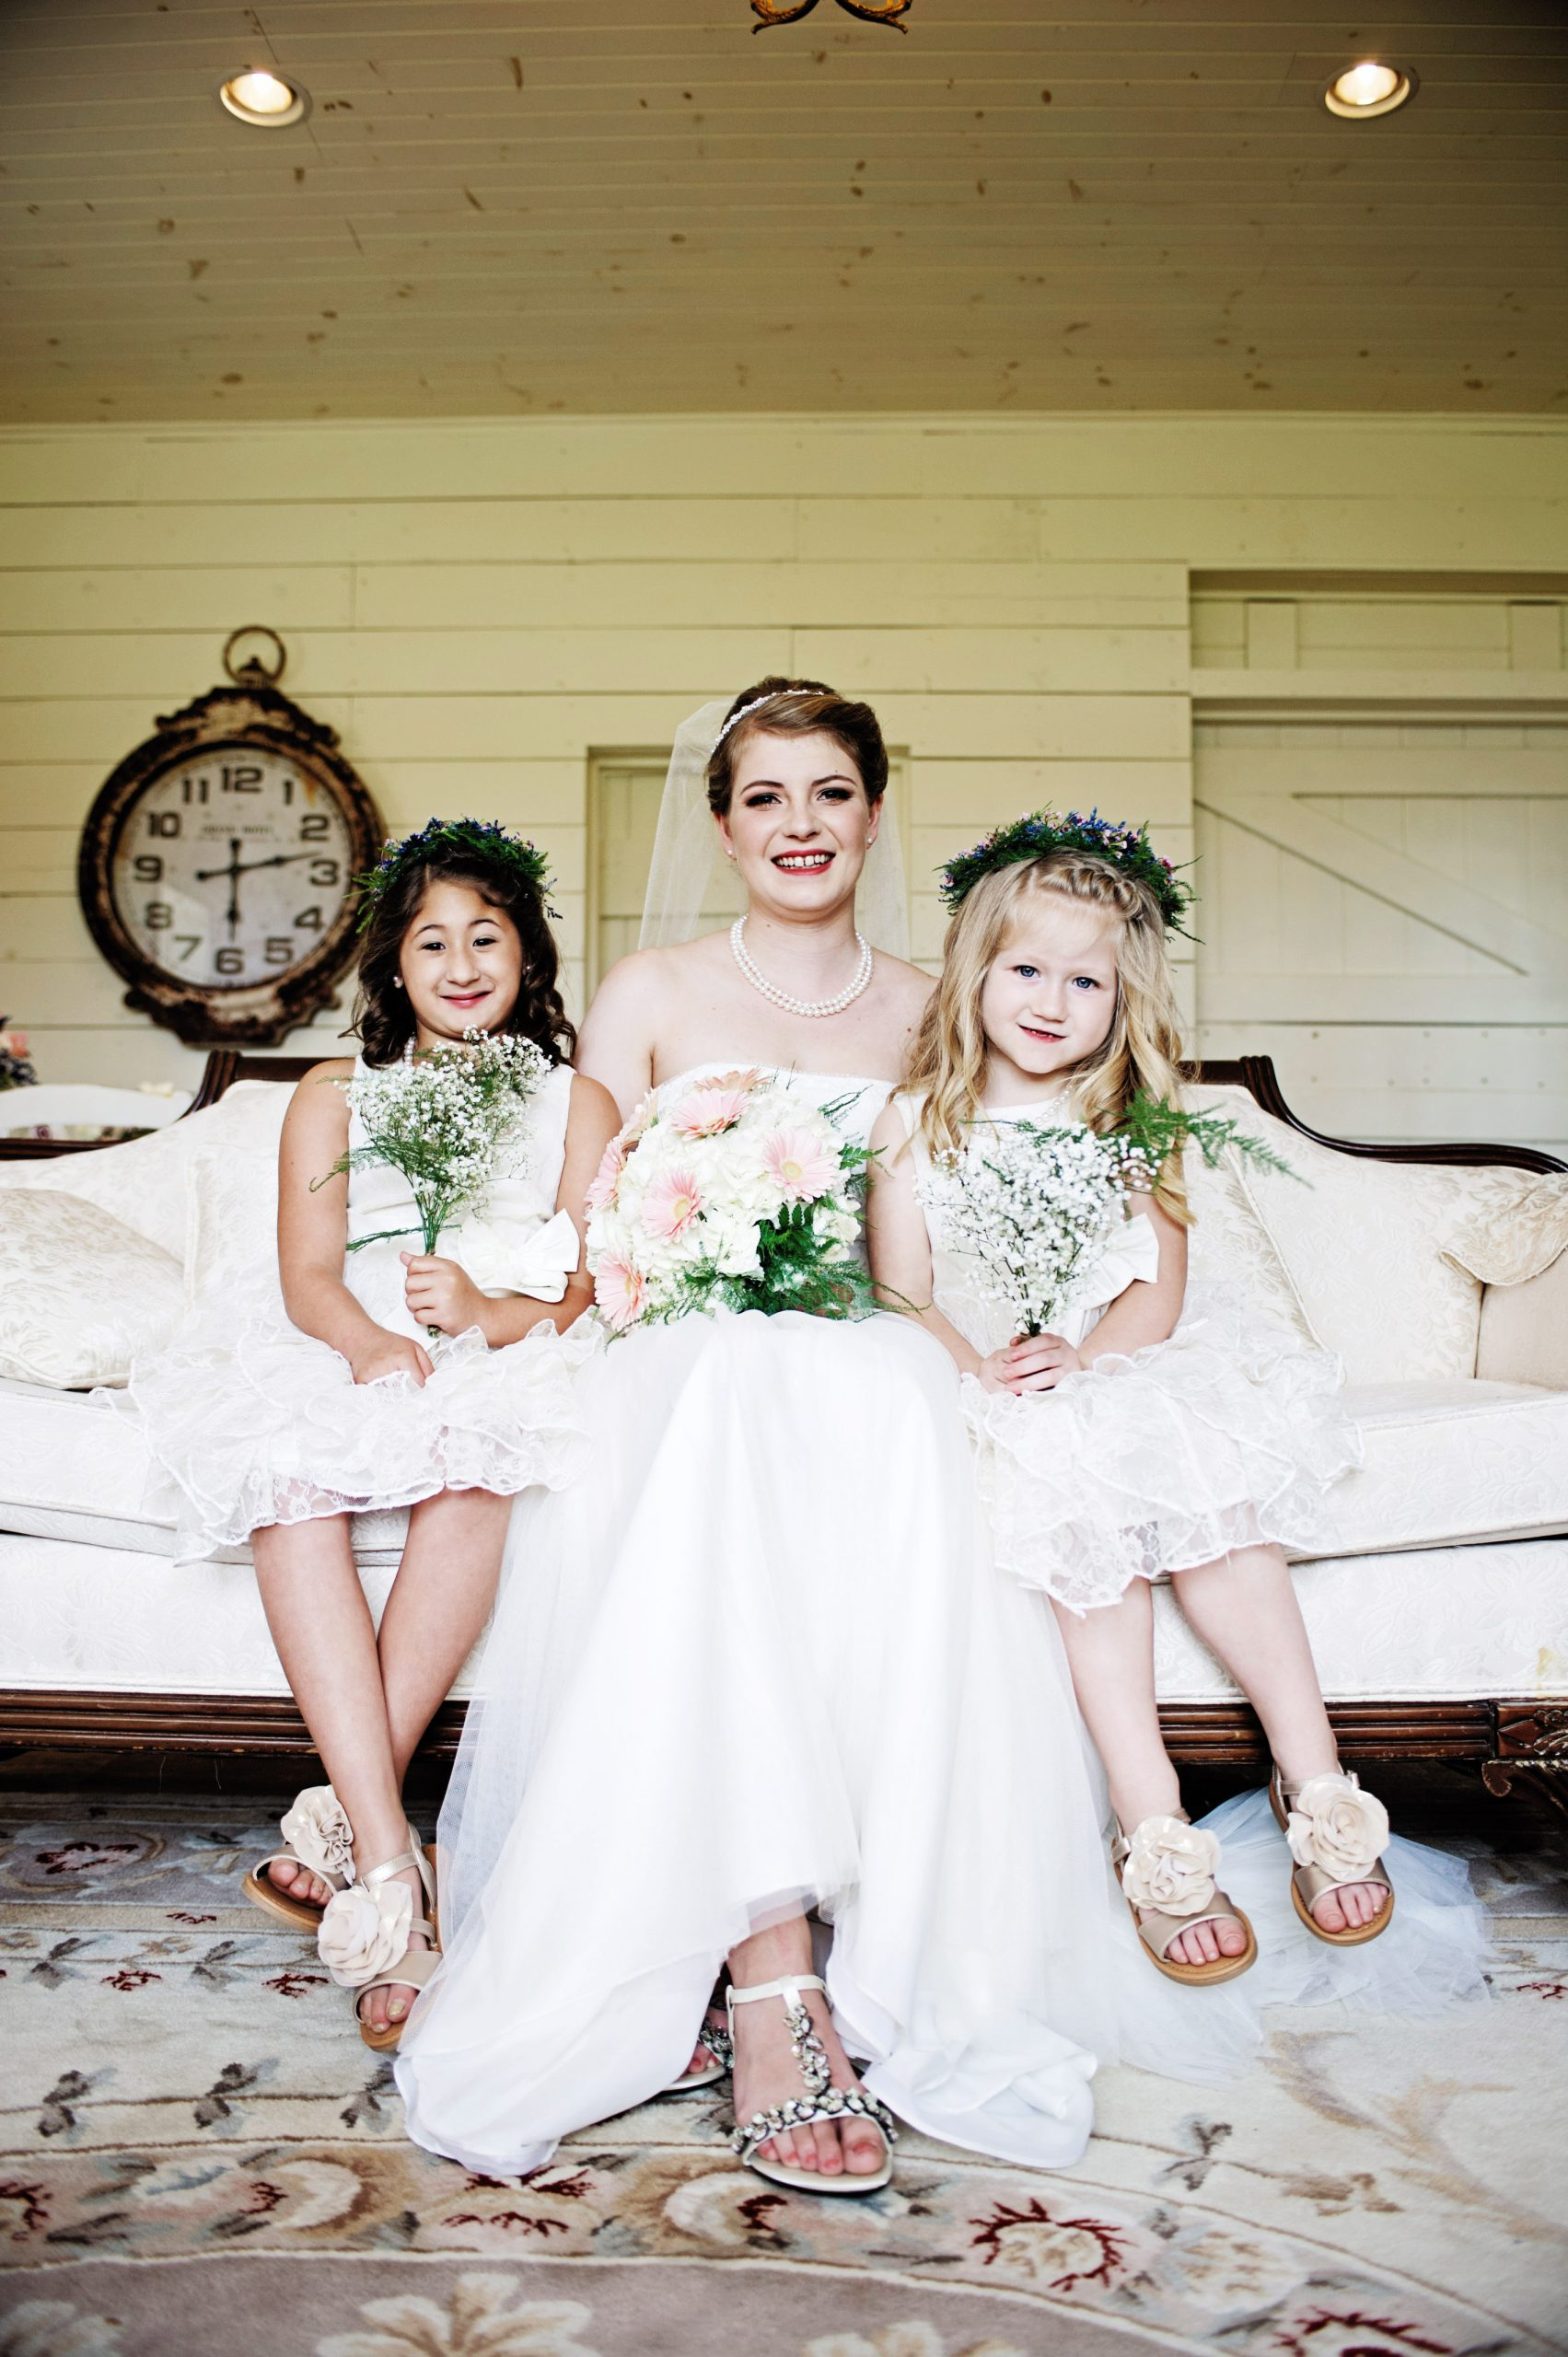 Cute shot by Lovefusion Photography of the bride to be partnered by her flower girls at Lakeview Farms in York, PA. Featured in Dream Weddings.